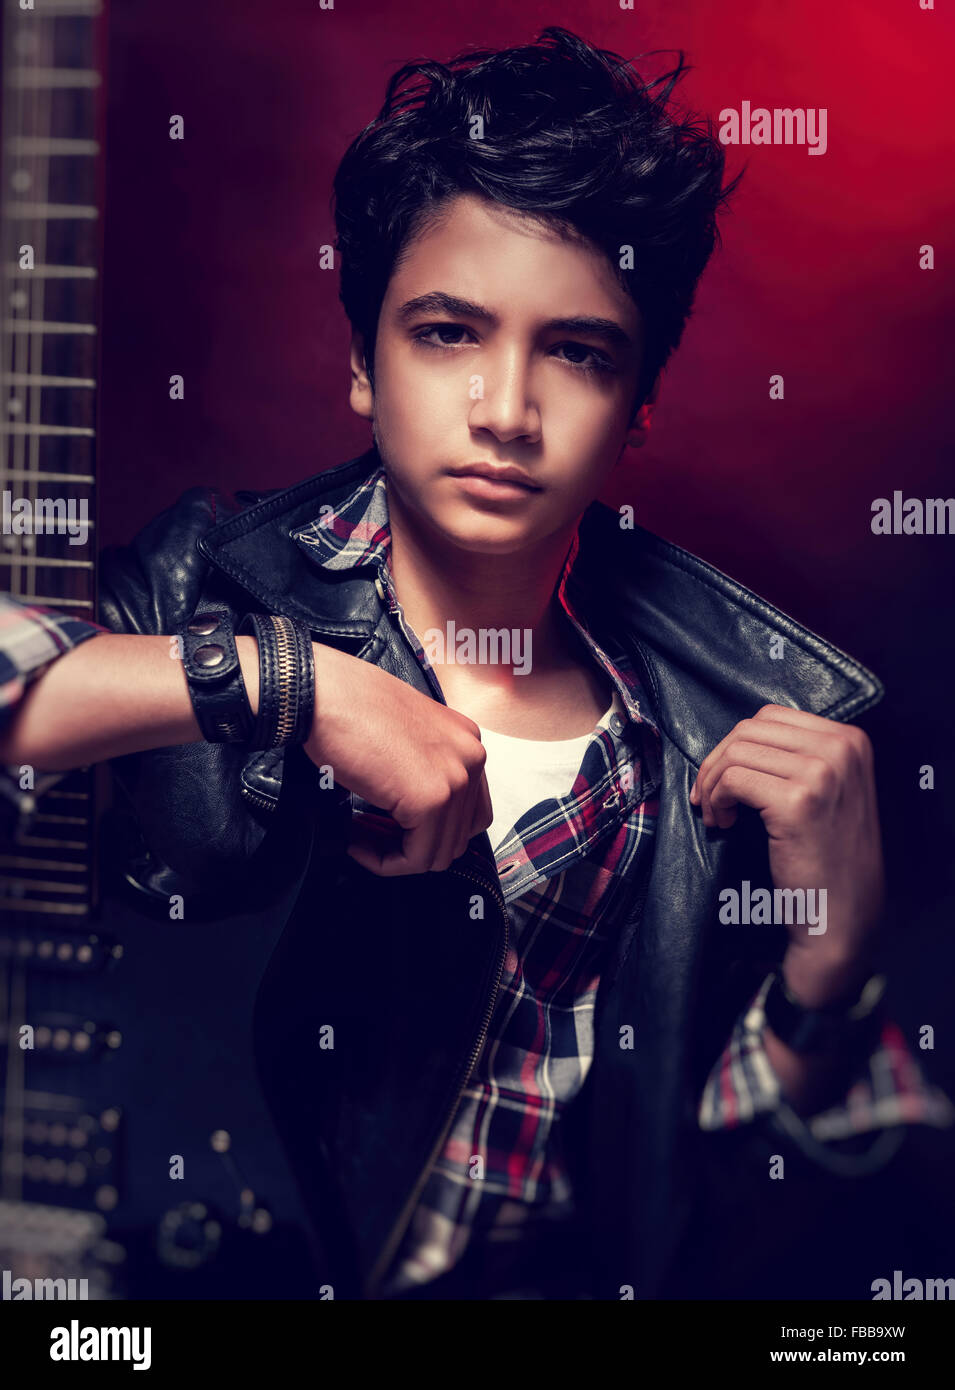 Attractive teen guy posing with guitar over dark red background ...